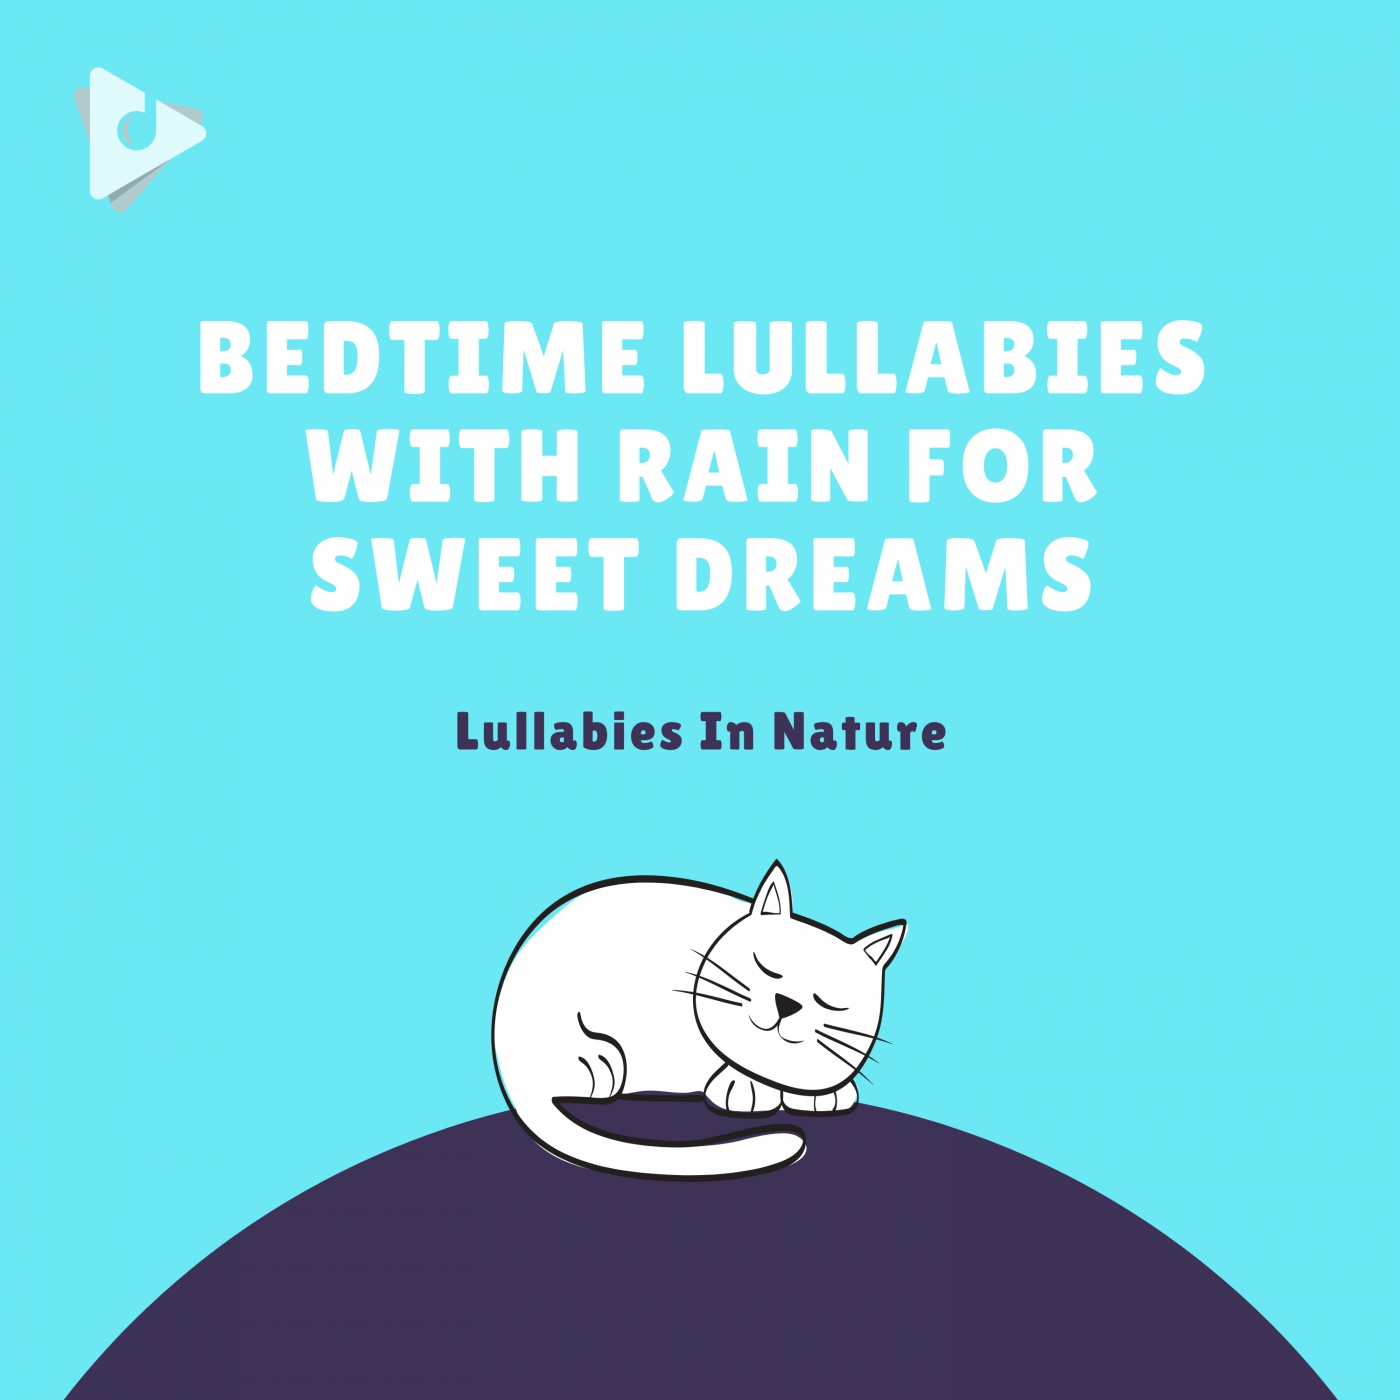 Bedtime Lullabies with Rain for Sweet Dreams